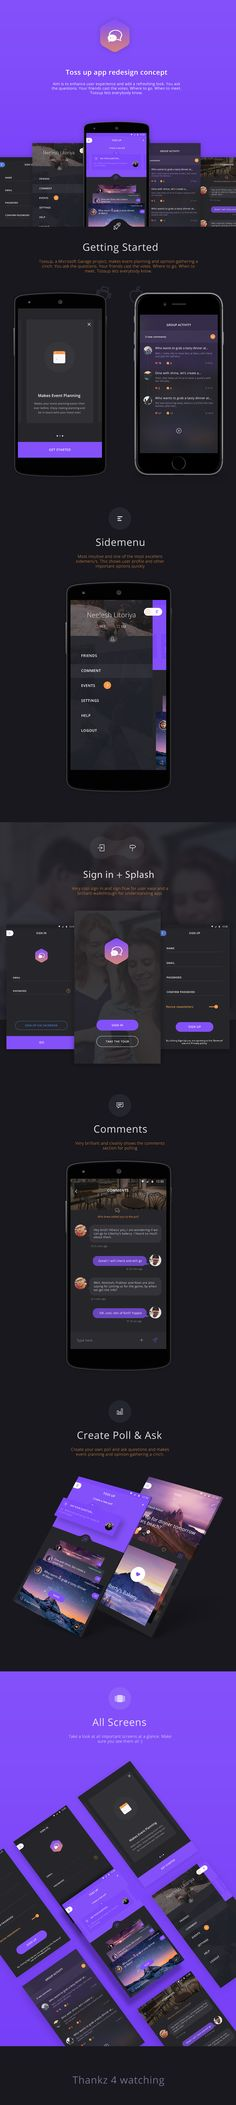 TOSS up app (redesign) on Behance